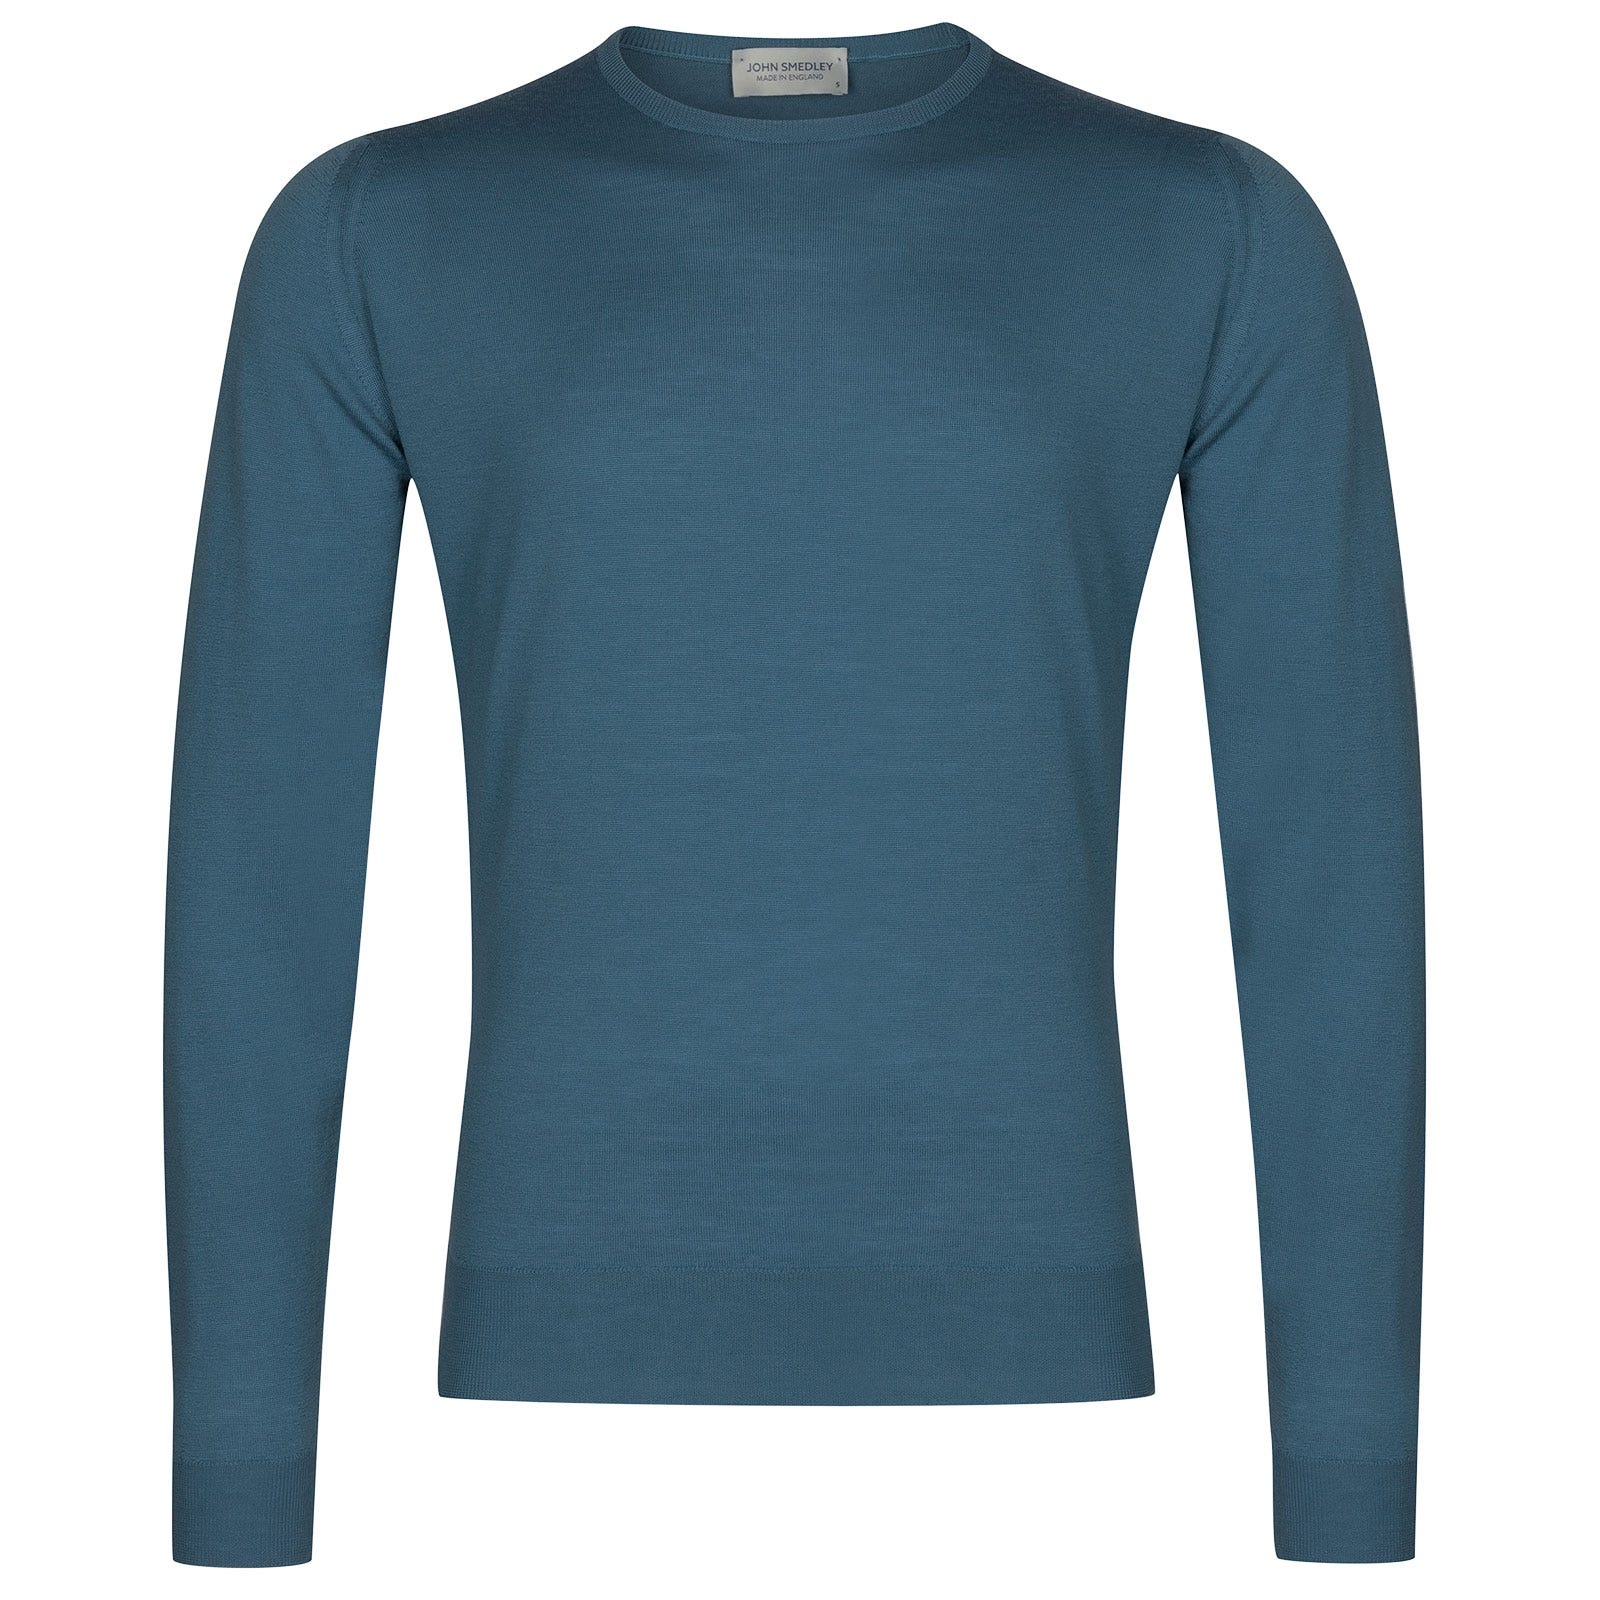 John Smedley Lundy Merino Wool Pullover in Bias Blue-S